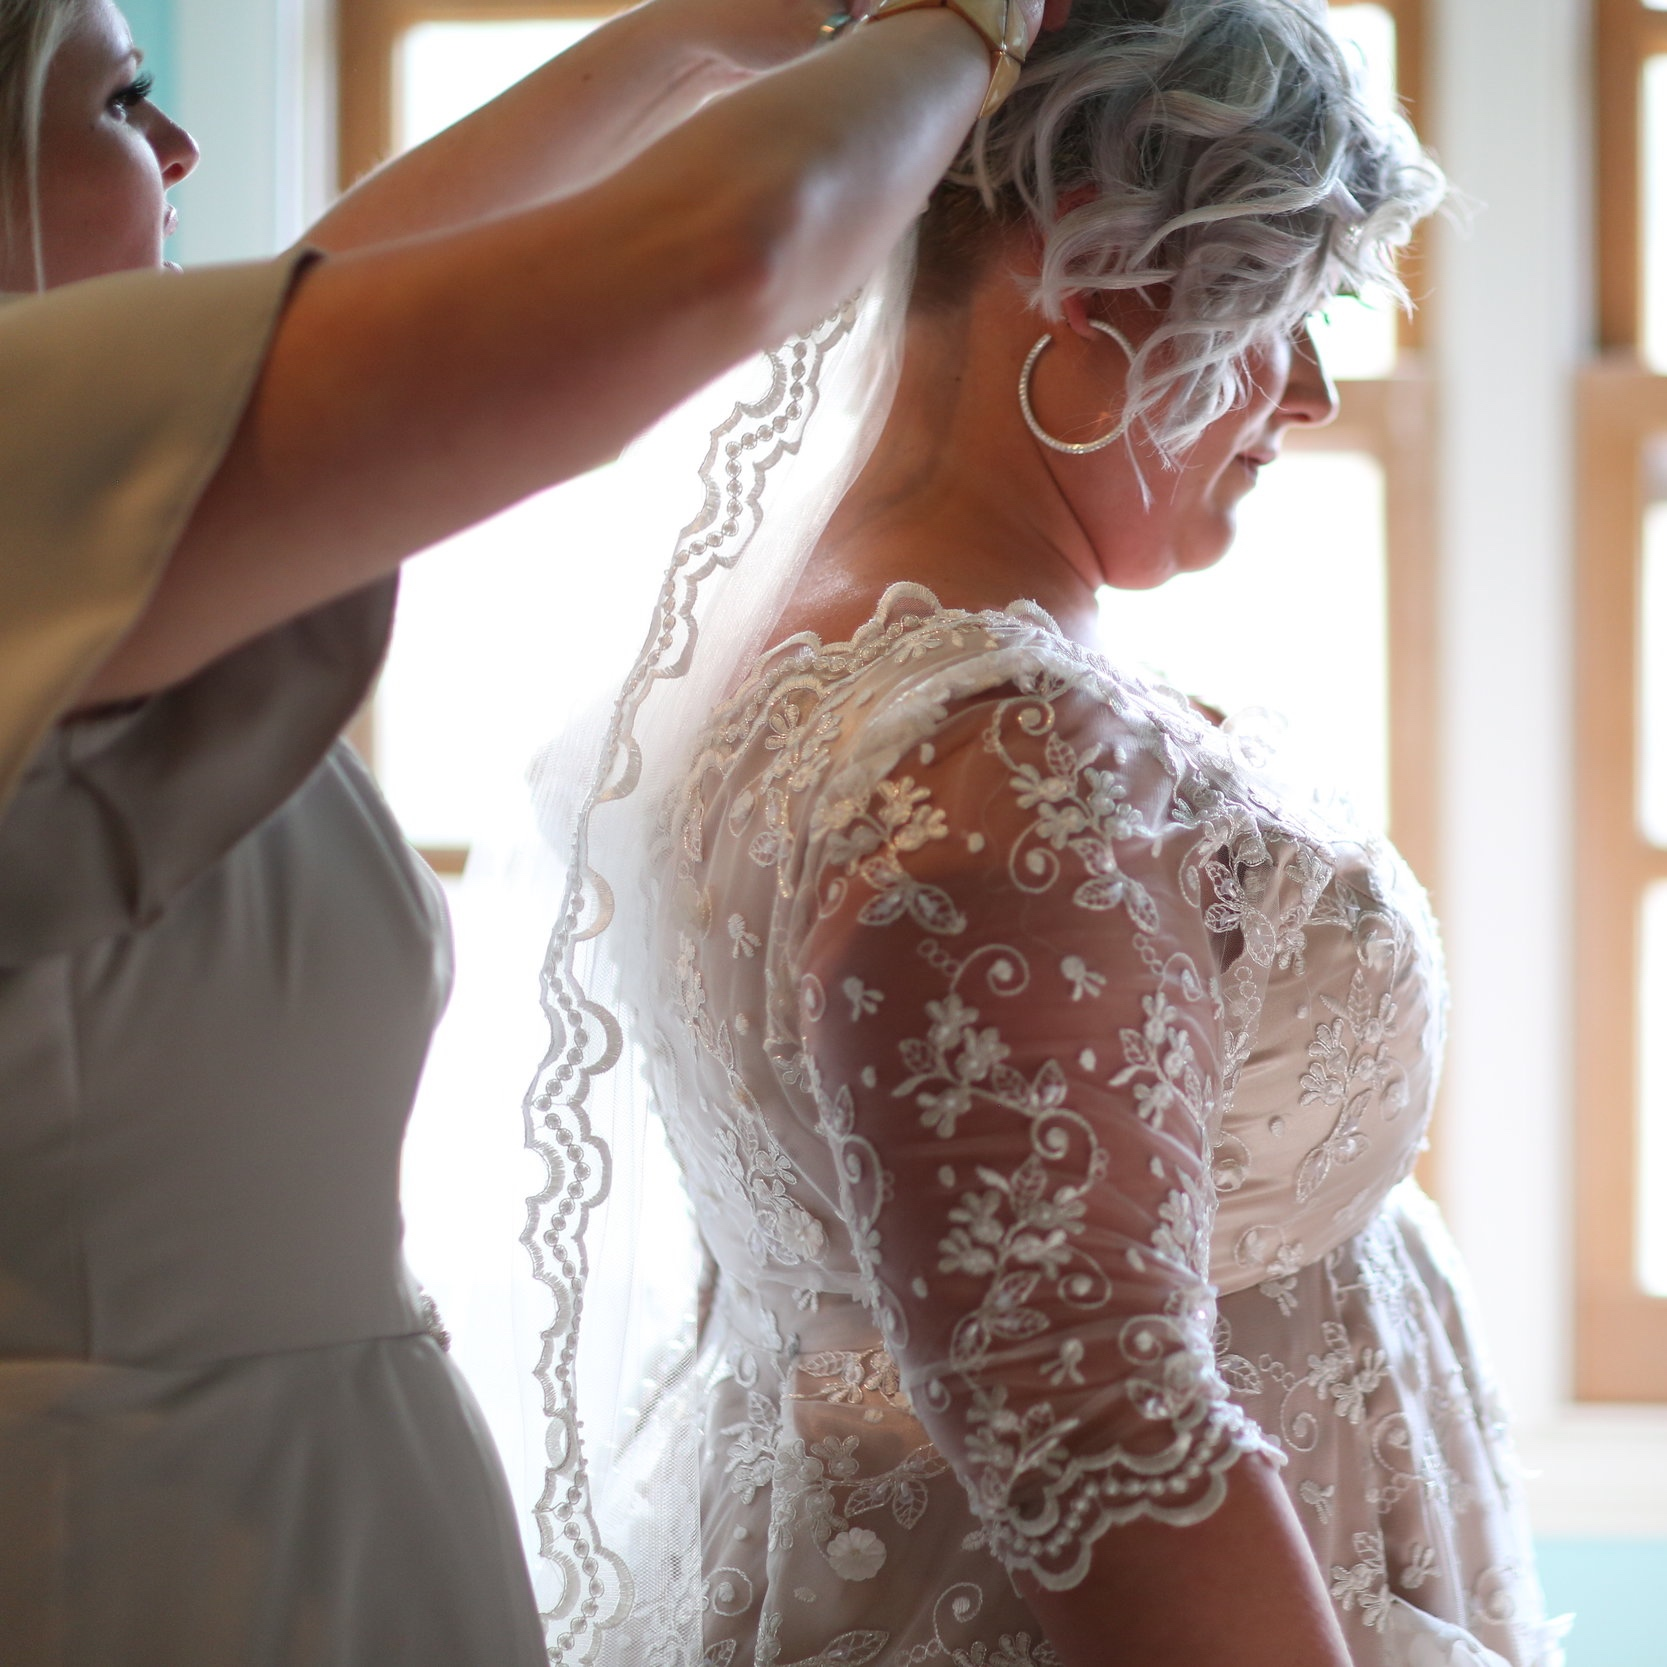 Bridesmaid putting the veil on the bride as she helps to finish getting her ready for her walk down the aisle in Murrieta California.